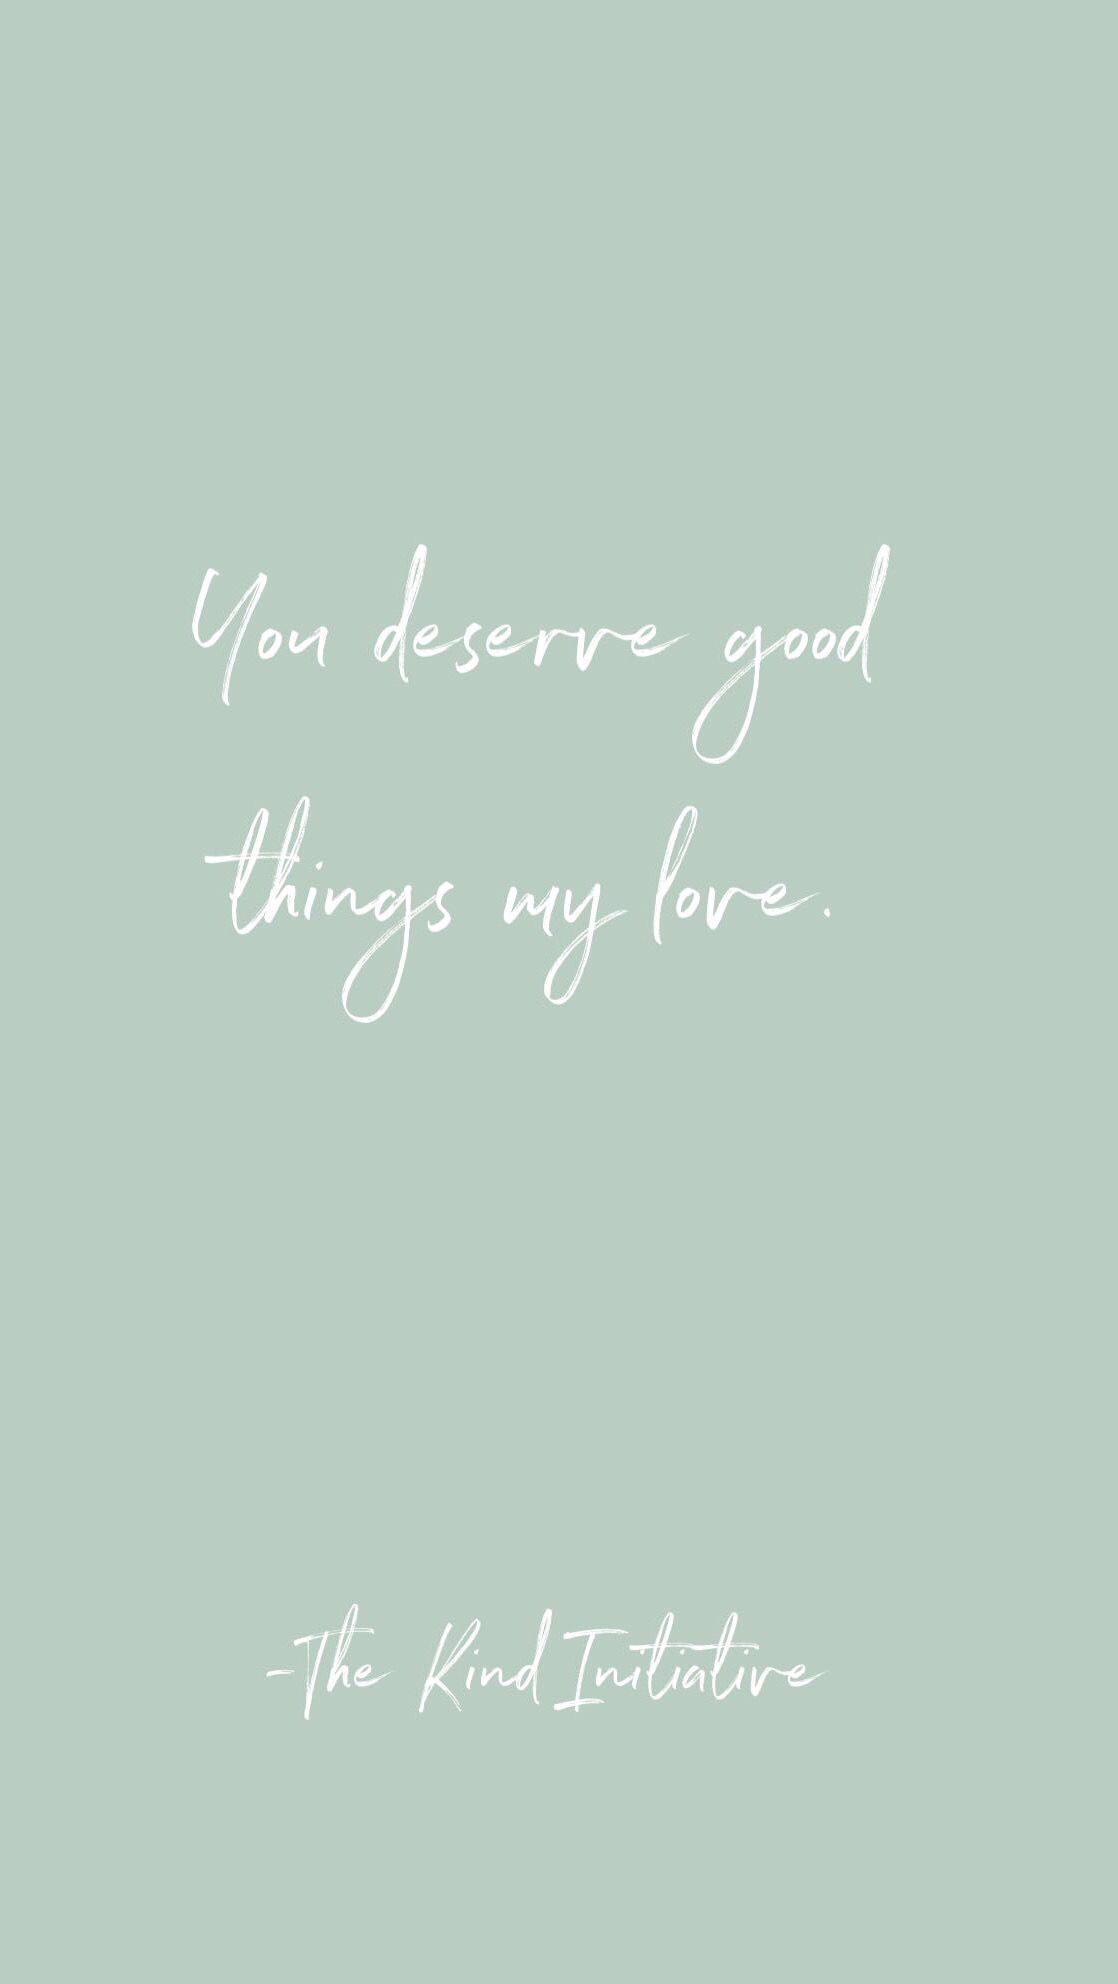 You deserve good things my love. #quotes #inspiration